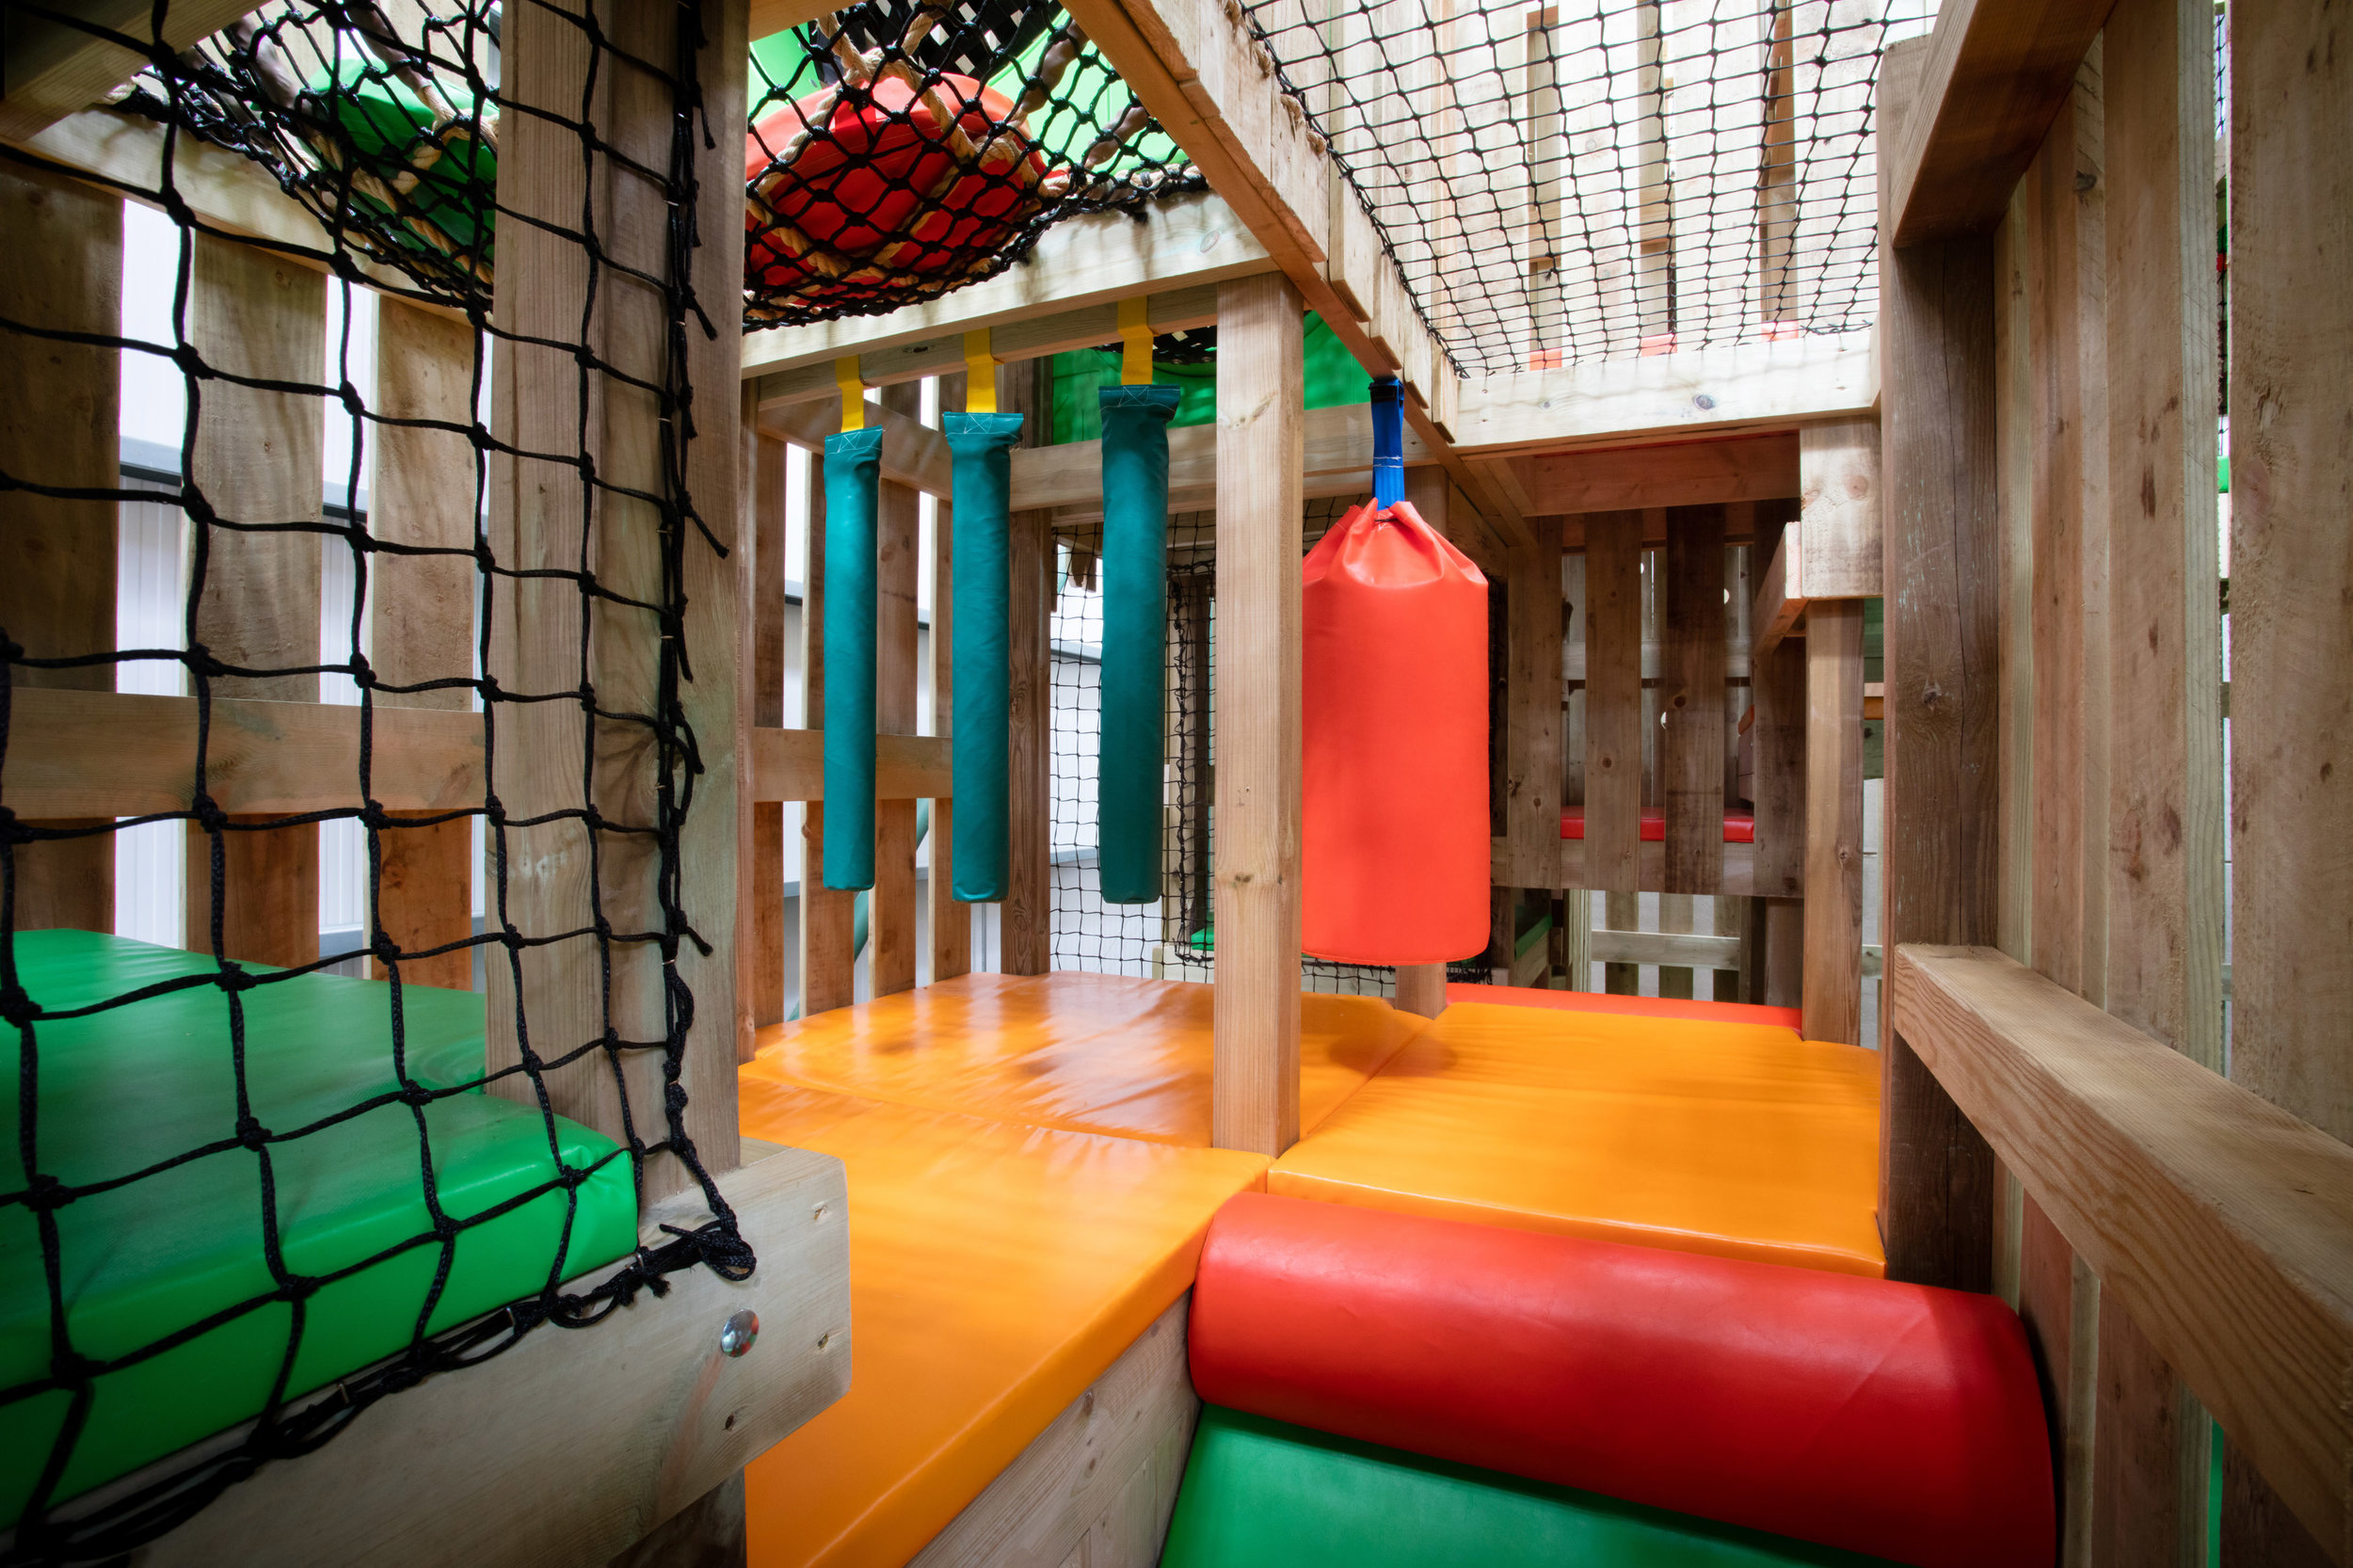 Hanging cylinders and punch bags offer obstacles as the little ones bound through the play area.